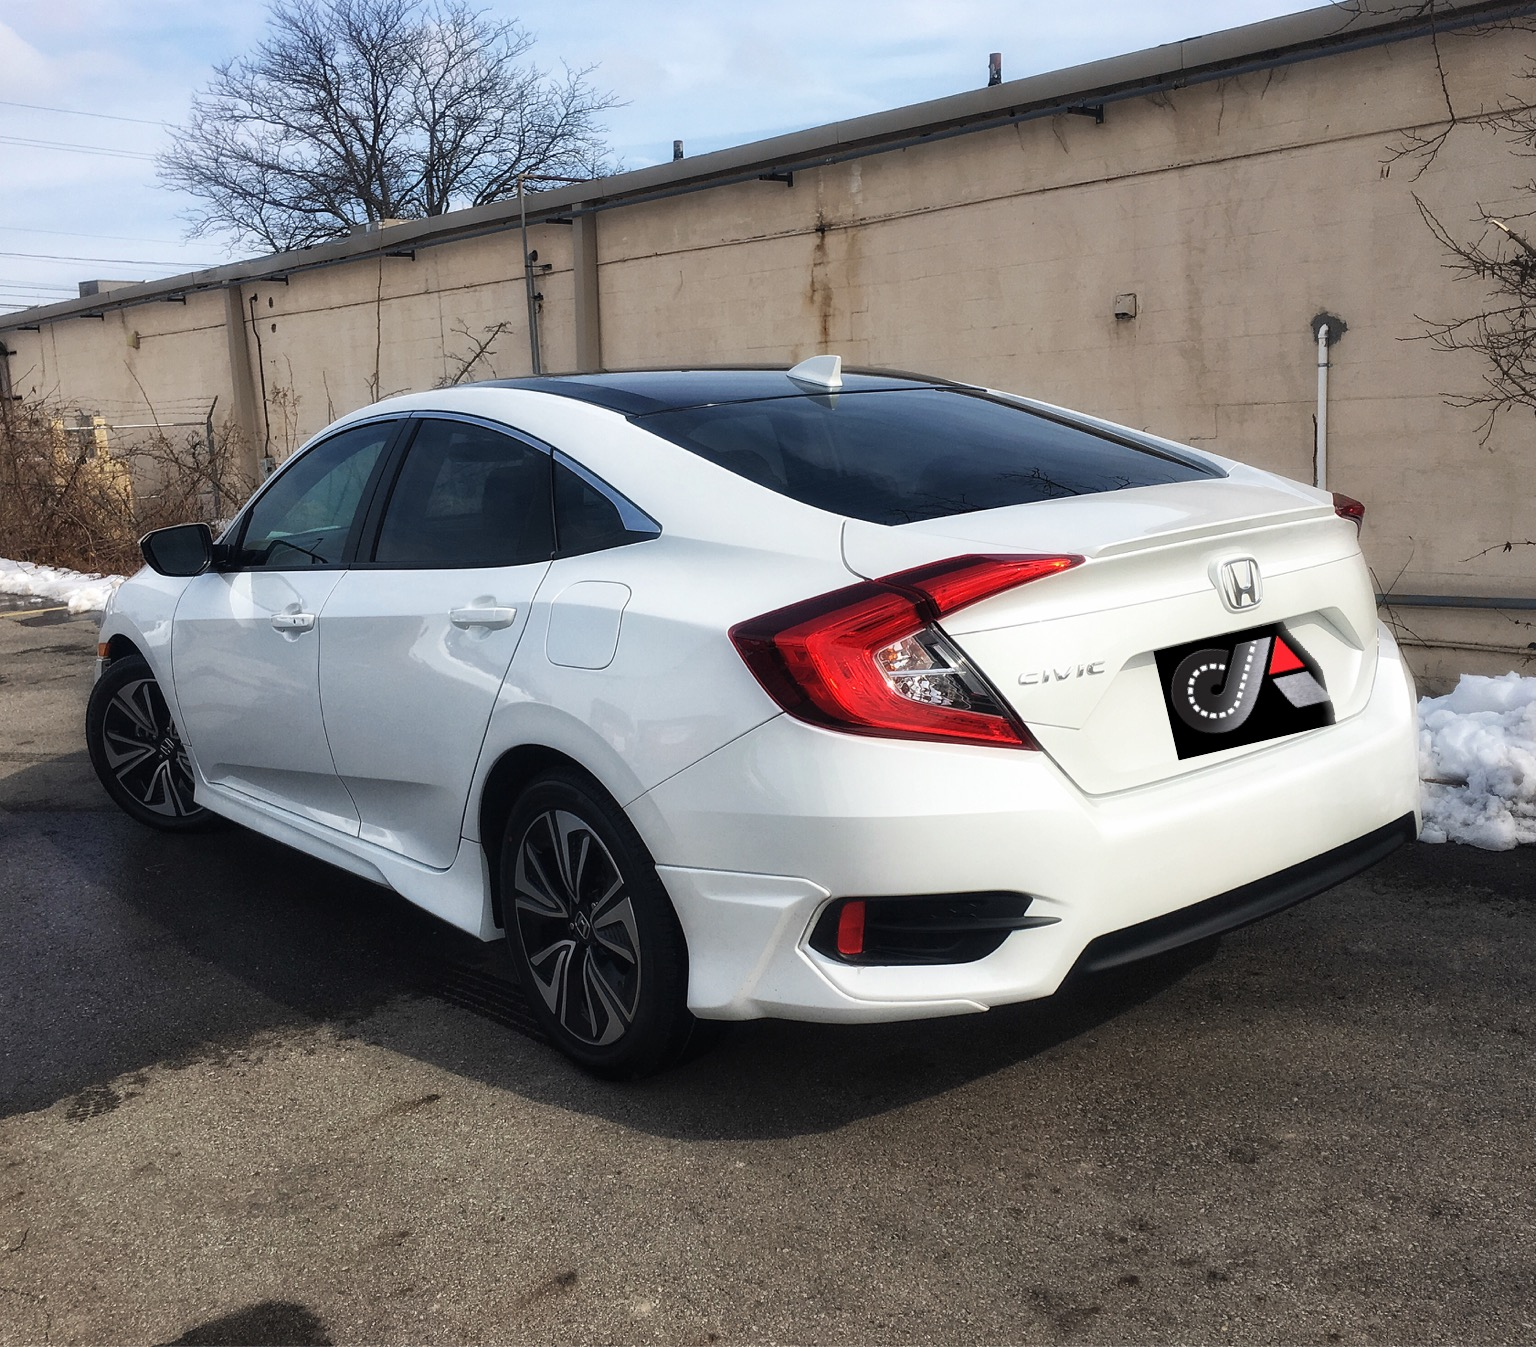 2016 Civic Tint Gloss Black Vinyl Roof Columbus Car Audio